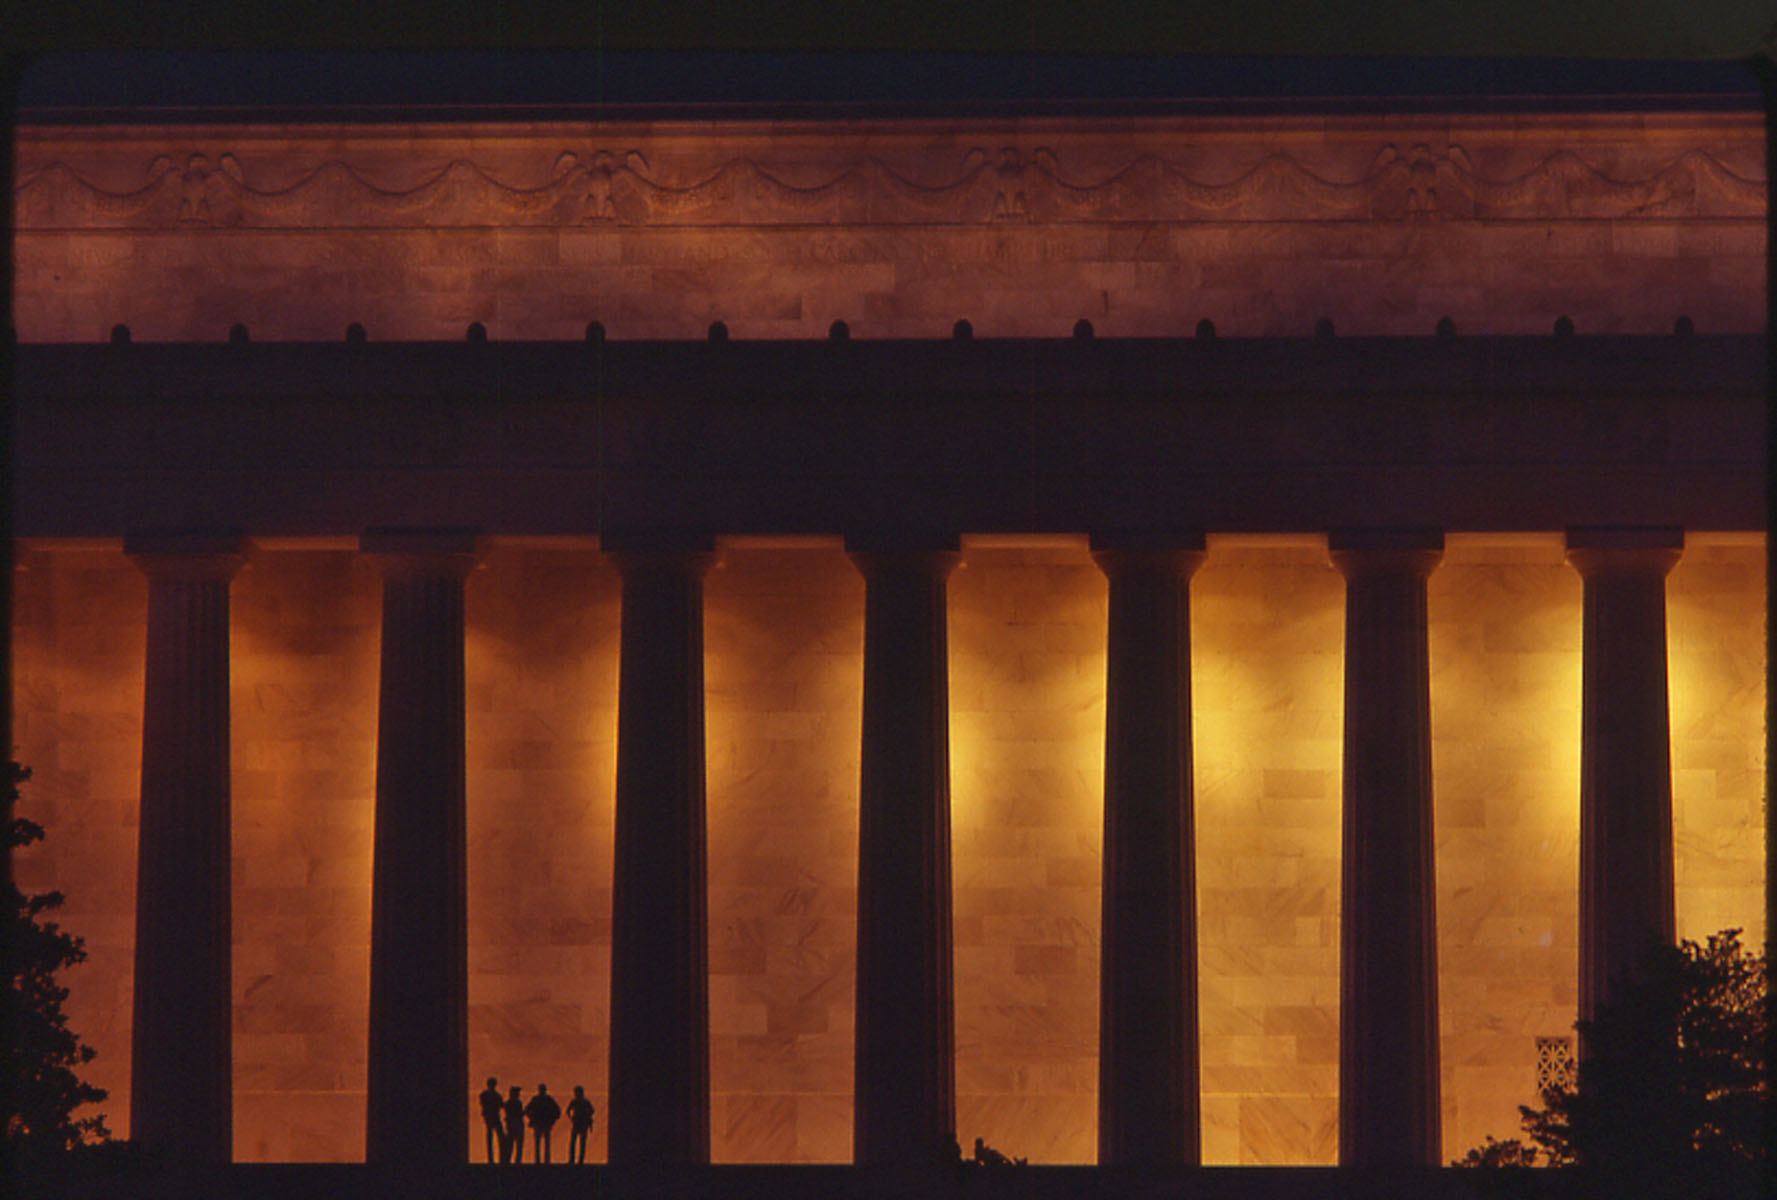 Lincoln Memorial, Washington, DC